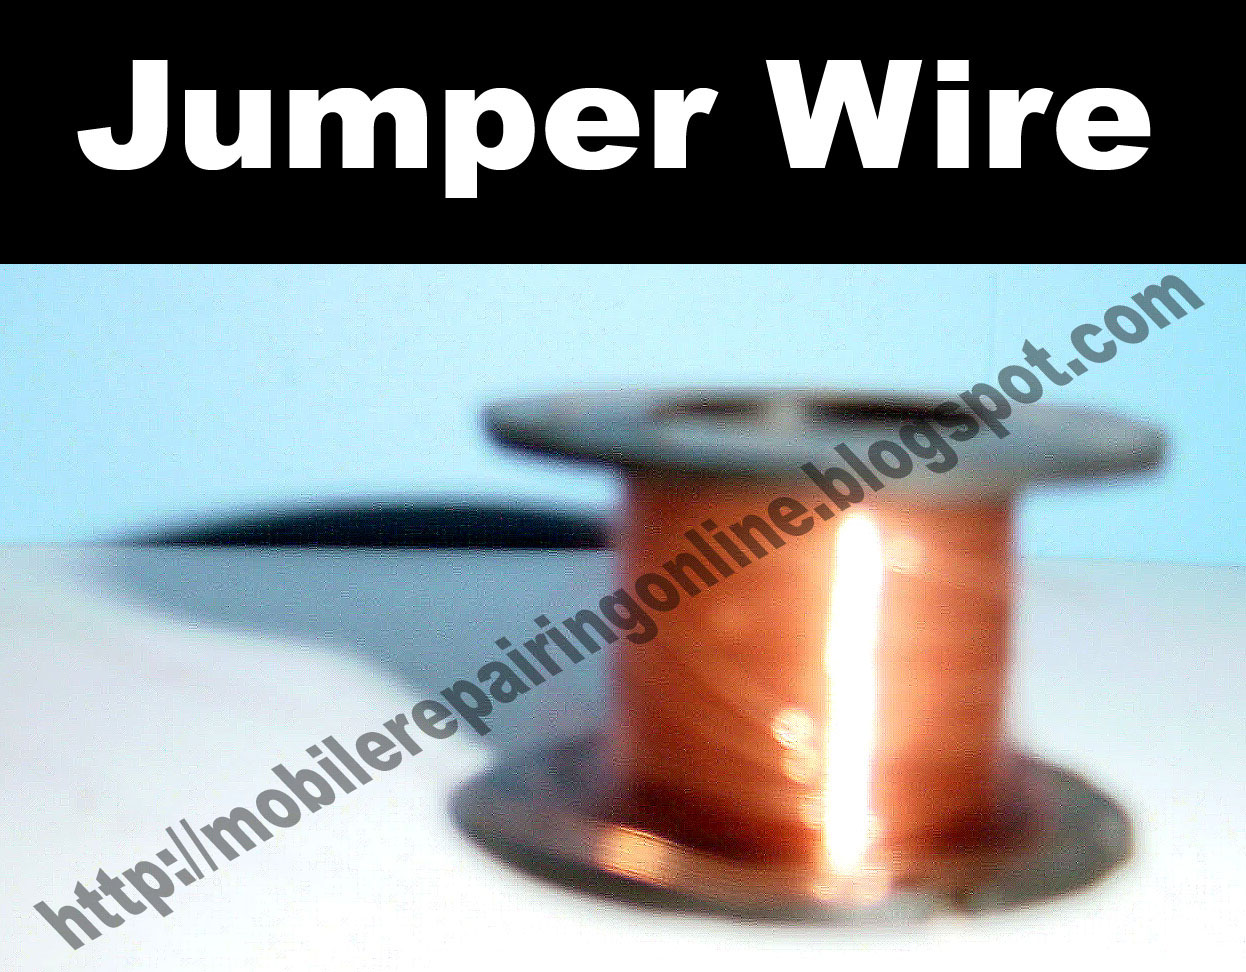 jumper wire for cellphone repairing